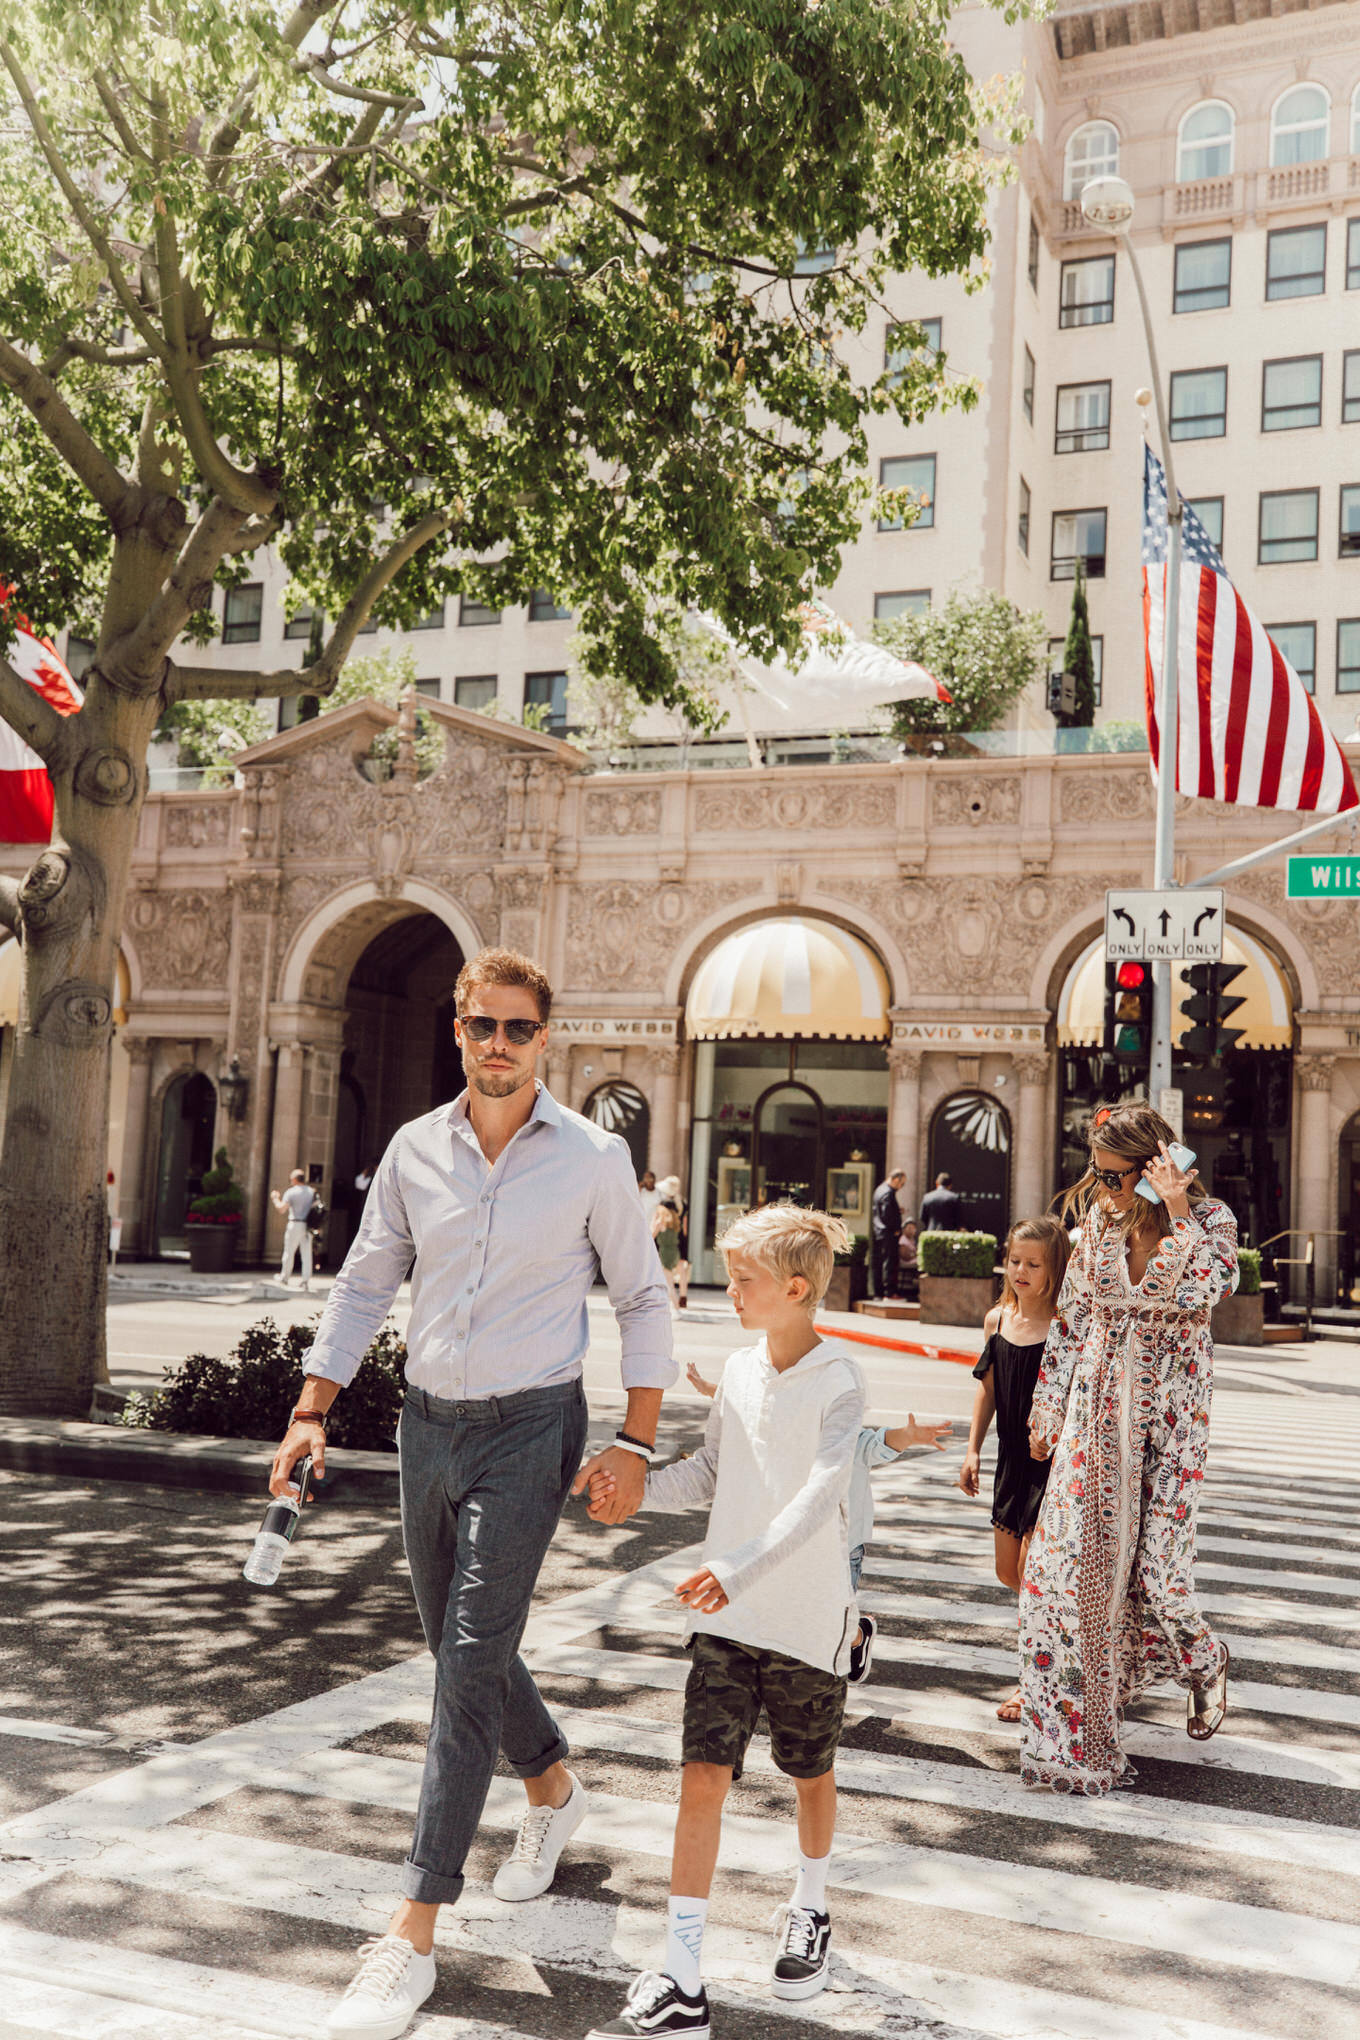 family activities in beverly hills